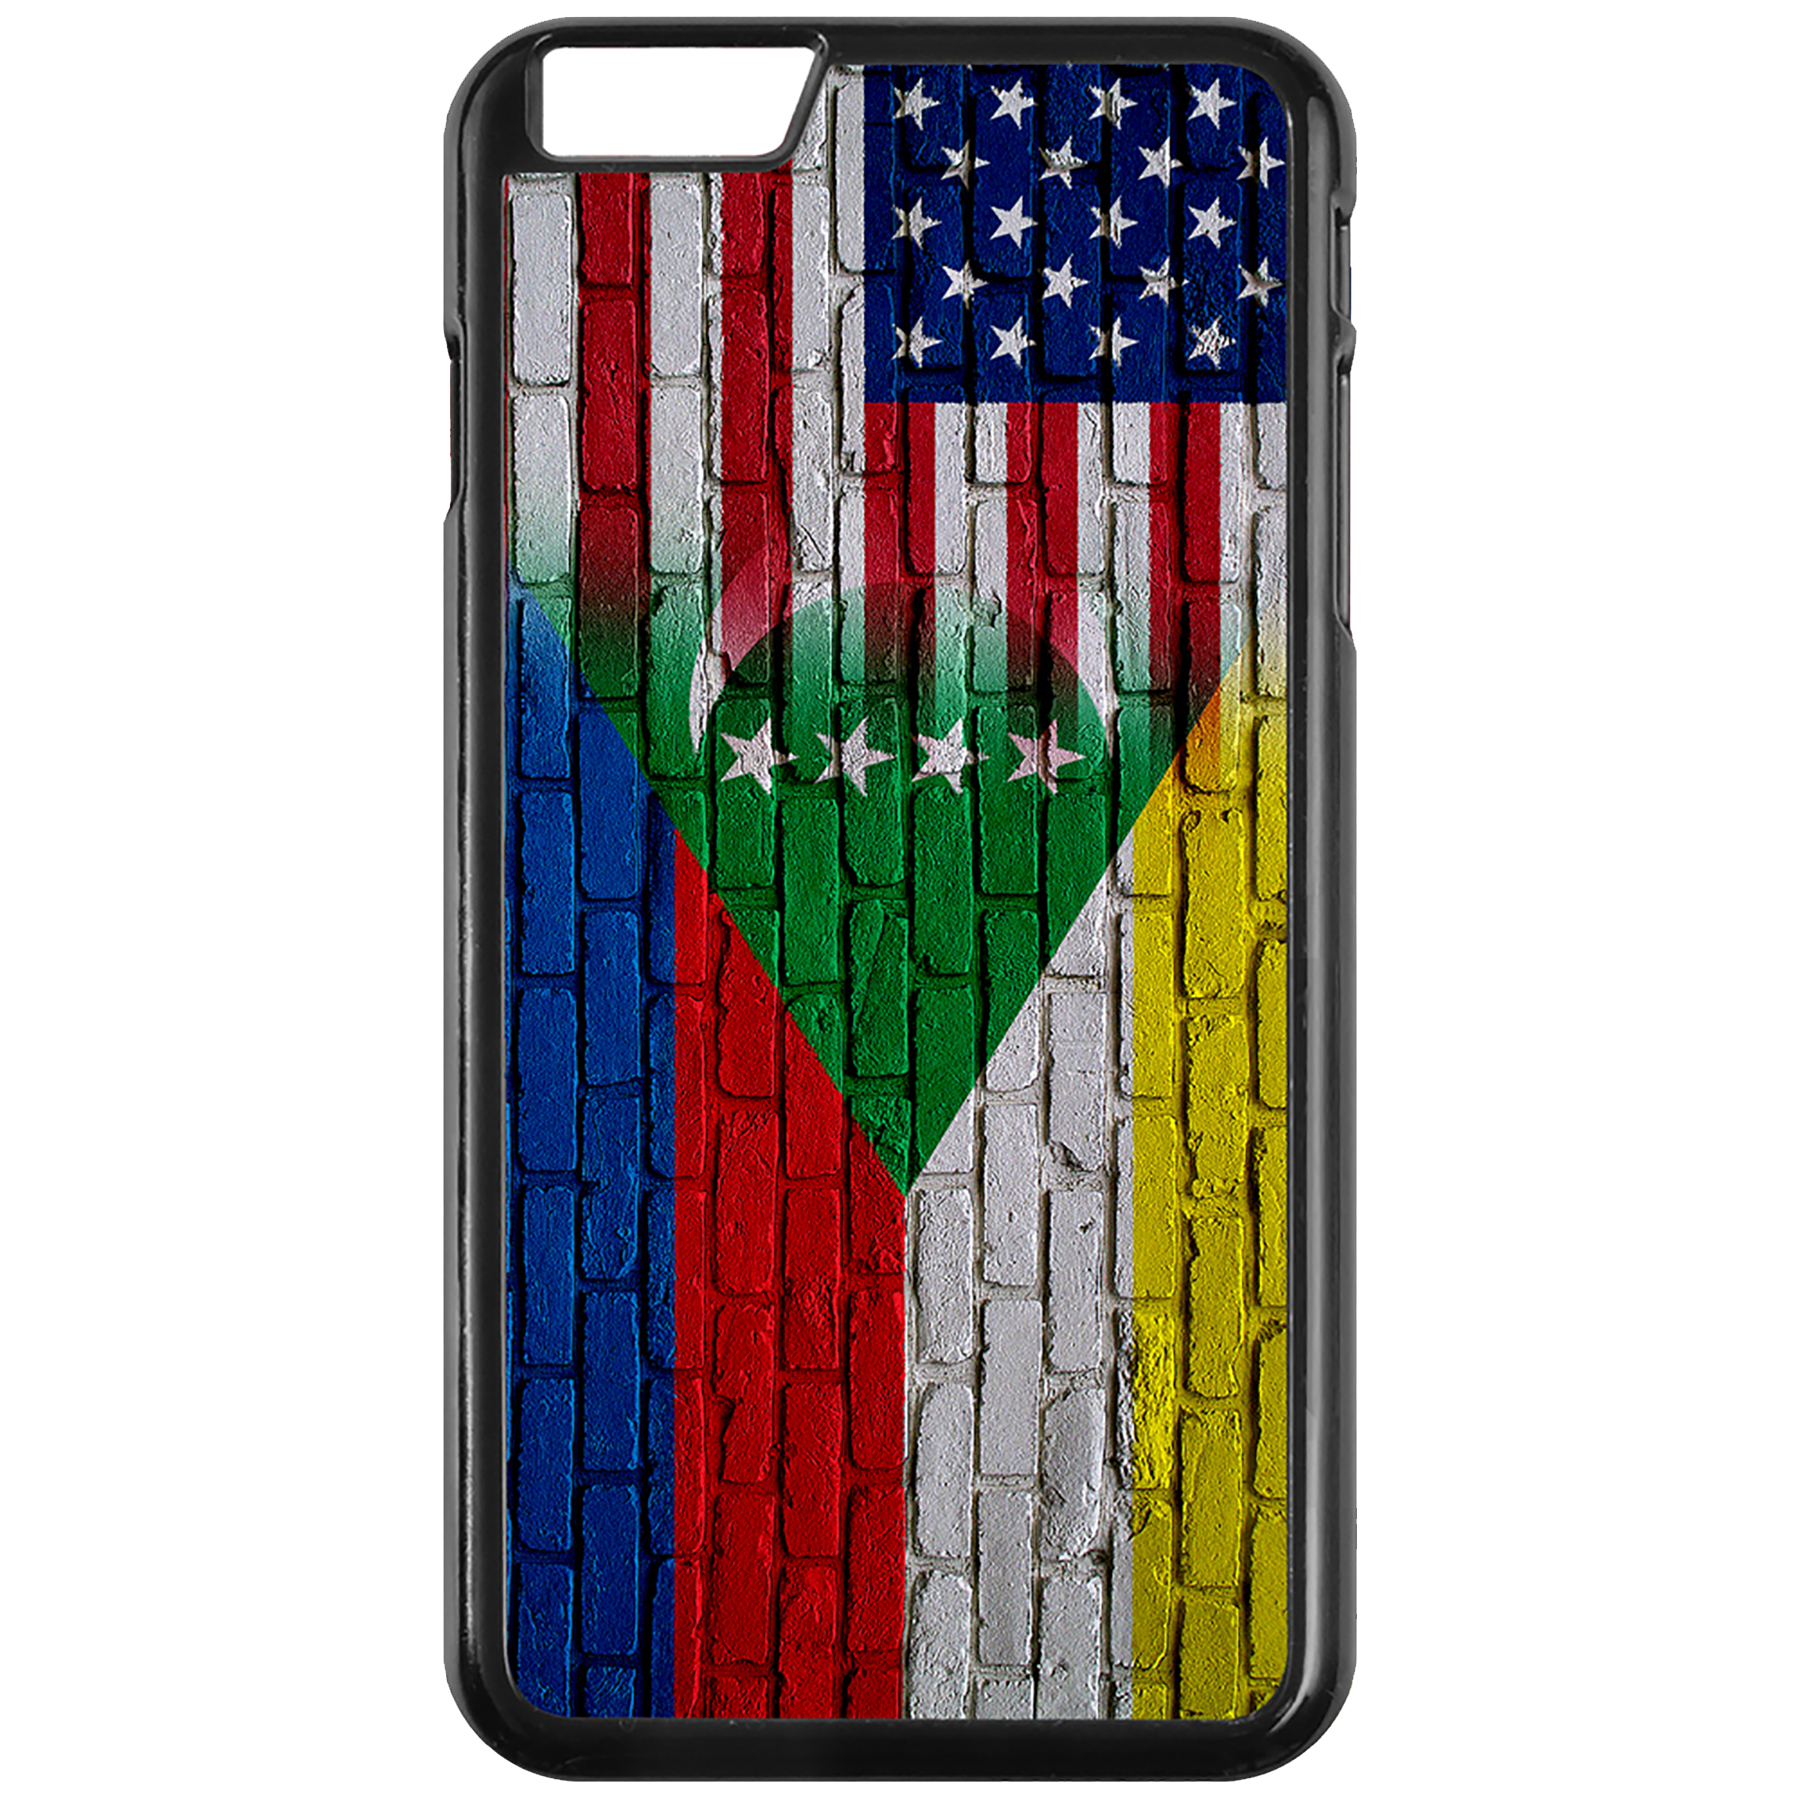 Apple-iPhone-Case-with-Flag-of-Comoros-Comorian-Many-Design-Options thumbnail 63